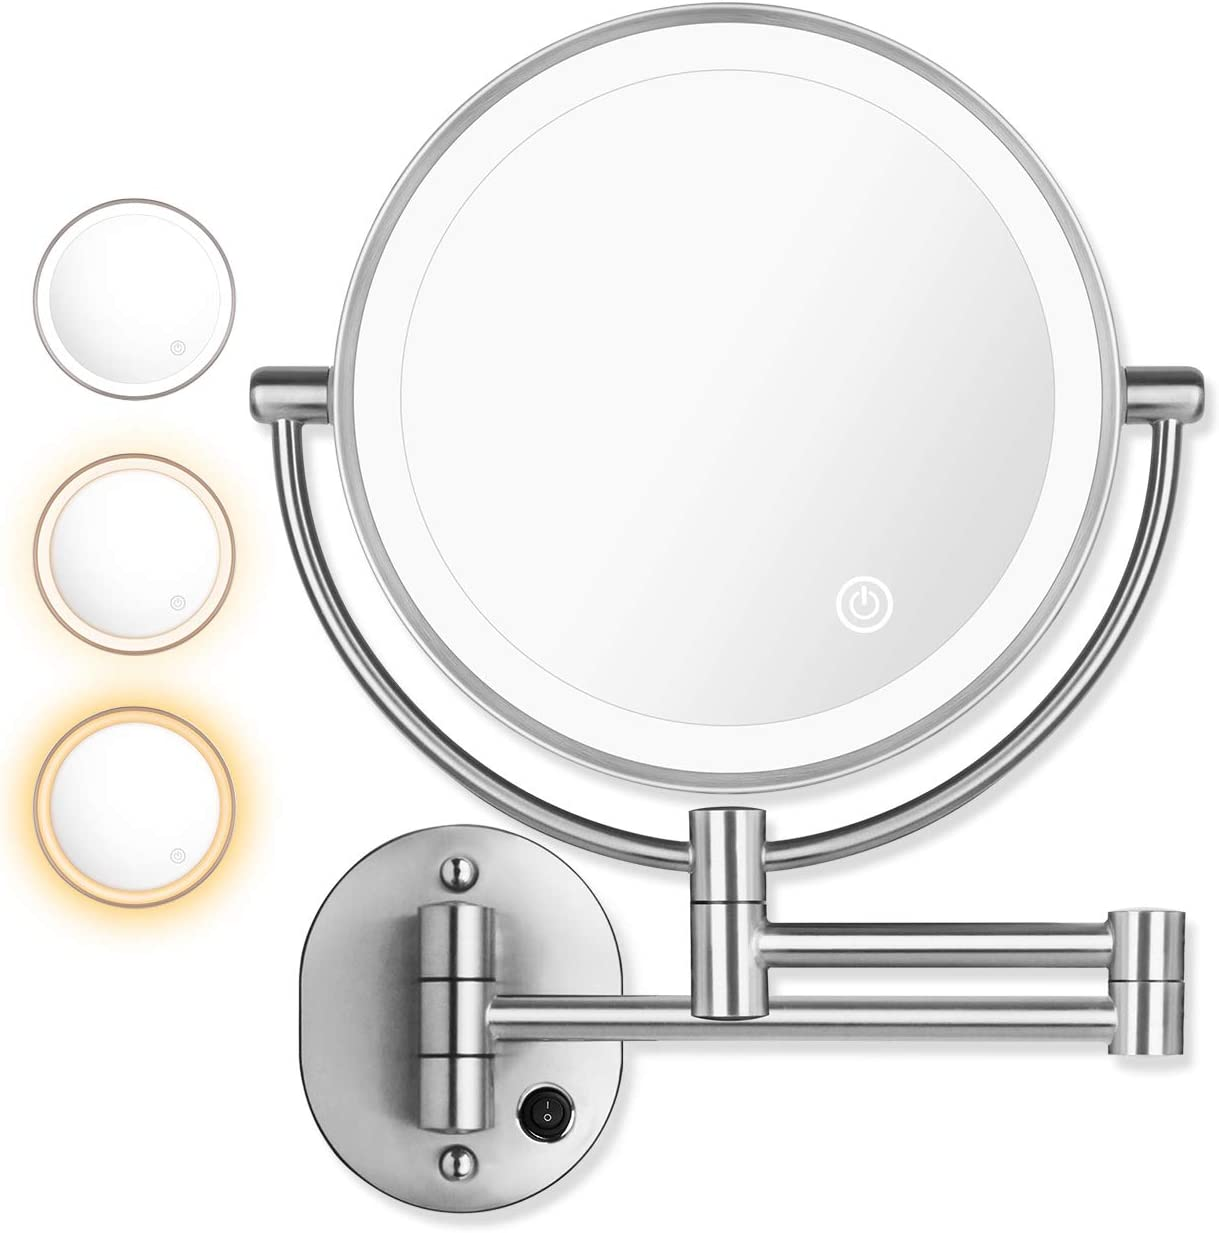 AmnoAmno 8.5 LED Double Sided Swivel Wall Mount Vanity mirror-10x Magnification,13.7 Extension,3 Colors Mode Adjustable Light Mirror for Bedroom or Bathroom 3 Colors Mode Adjustable